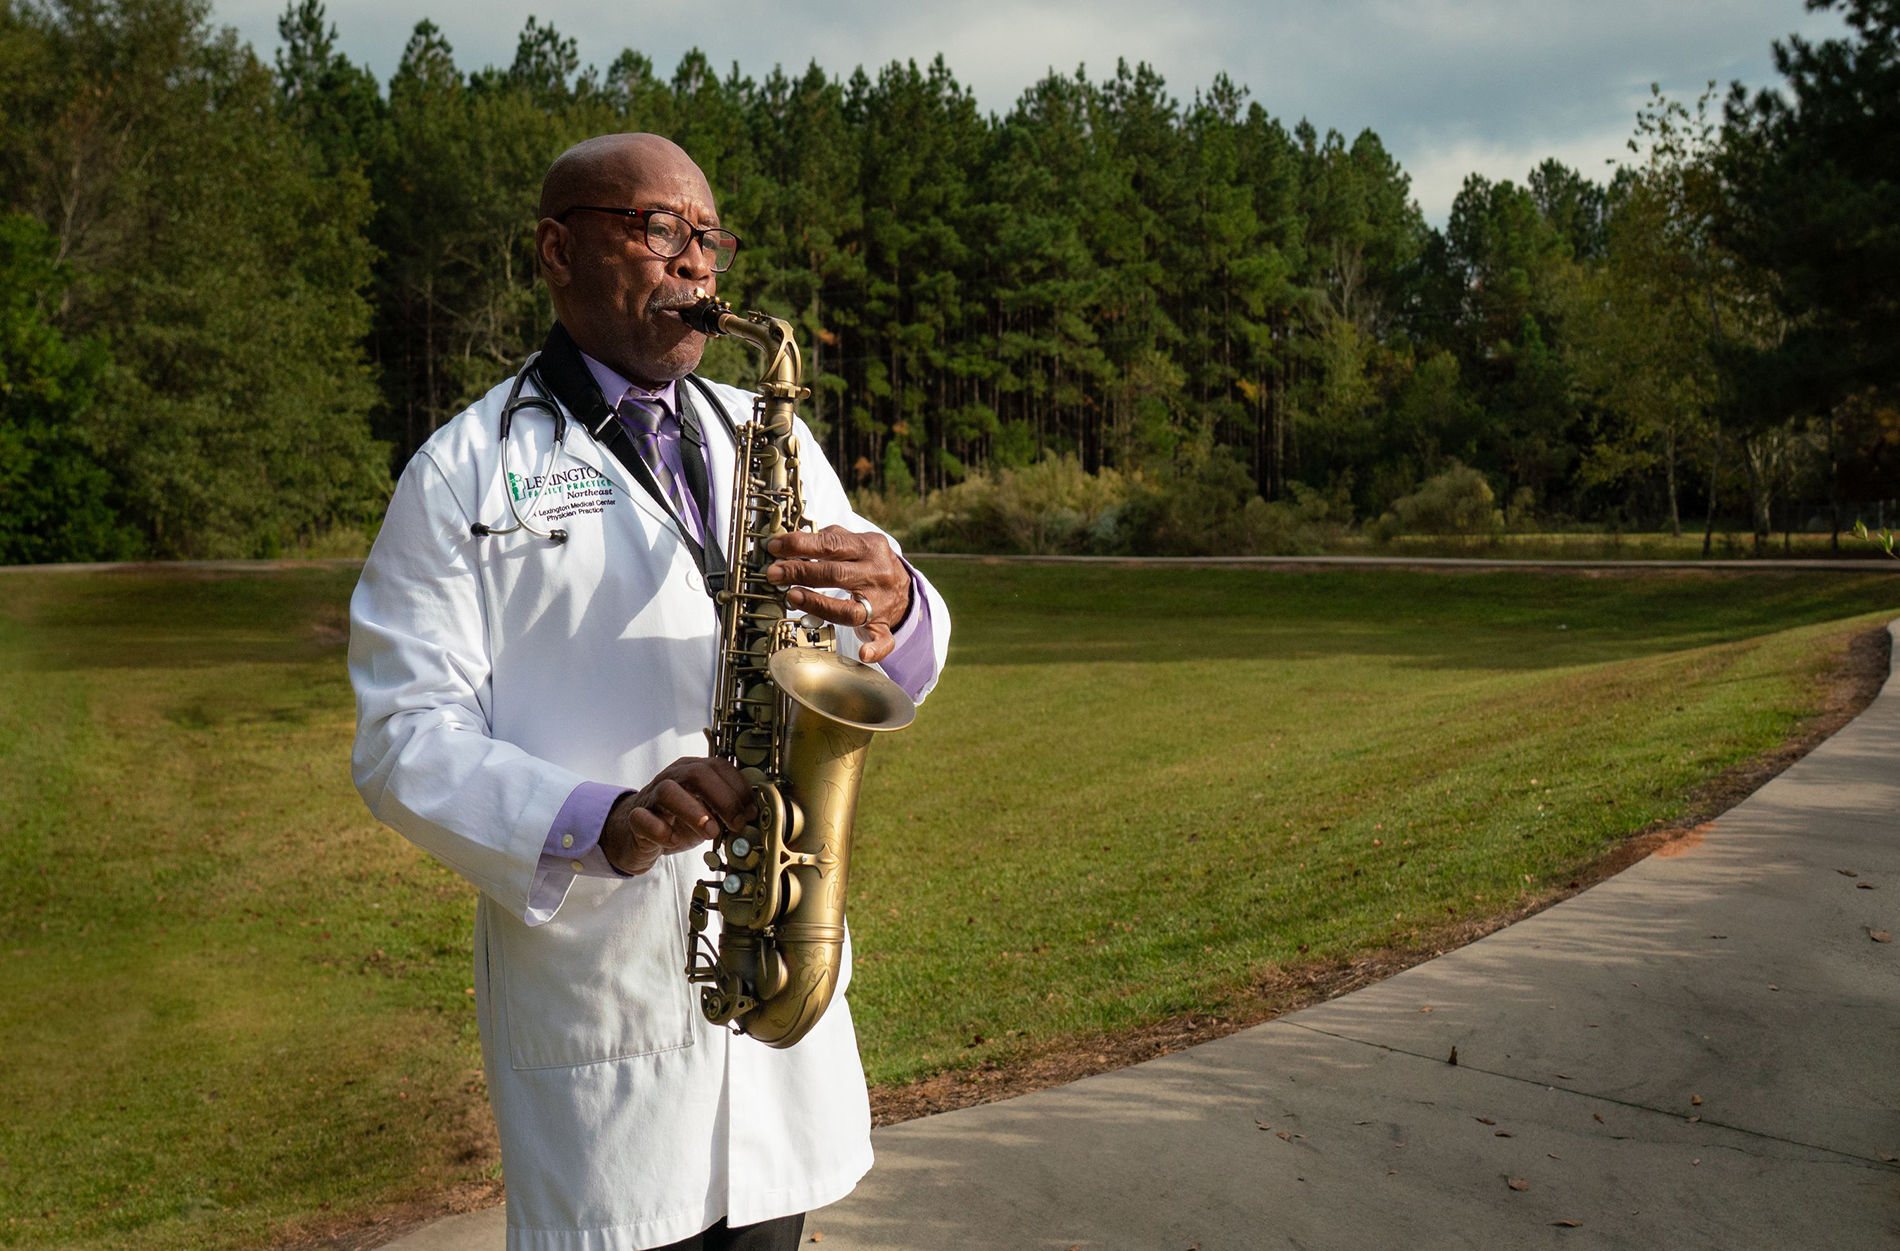 Dr. Marion playing saxophone outside wearing his white lab coat